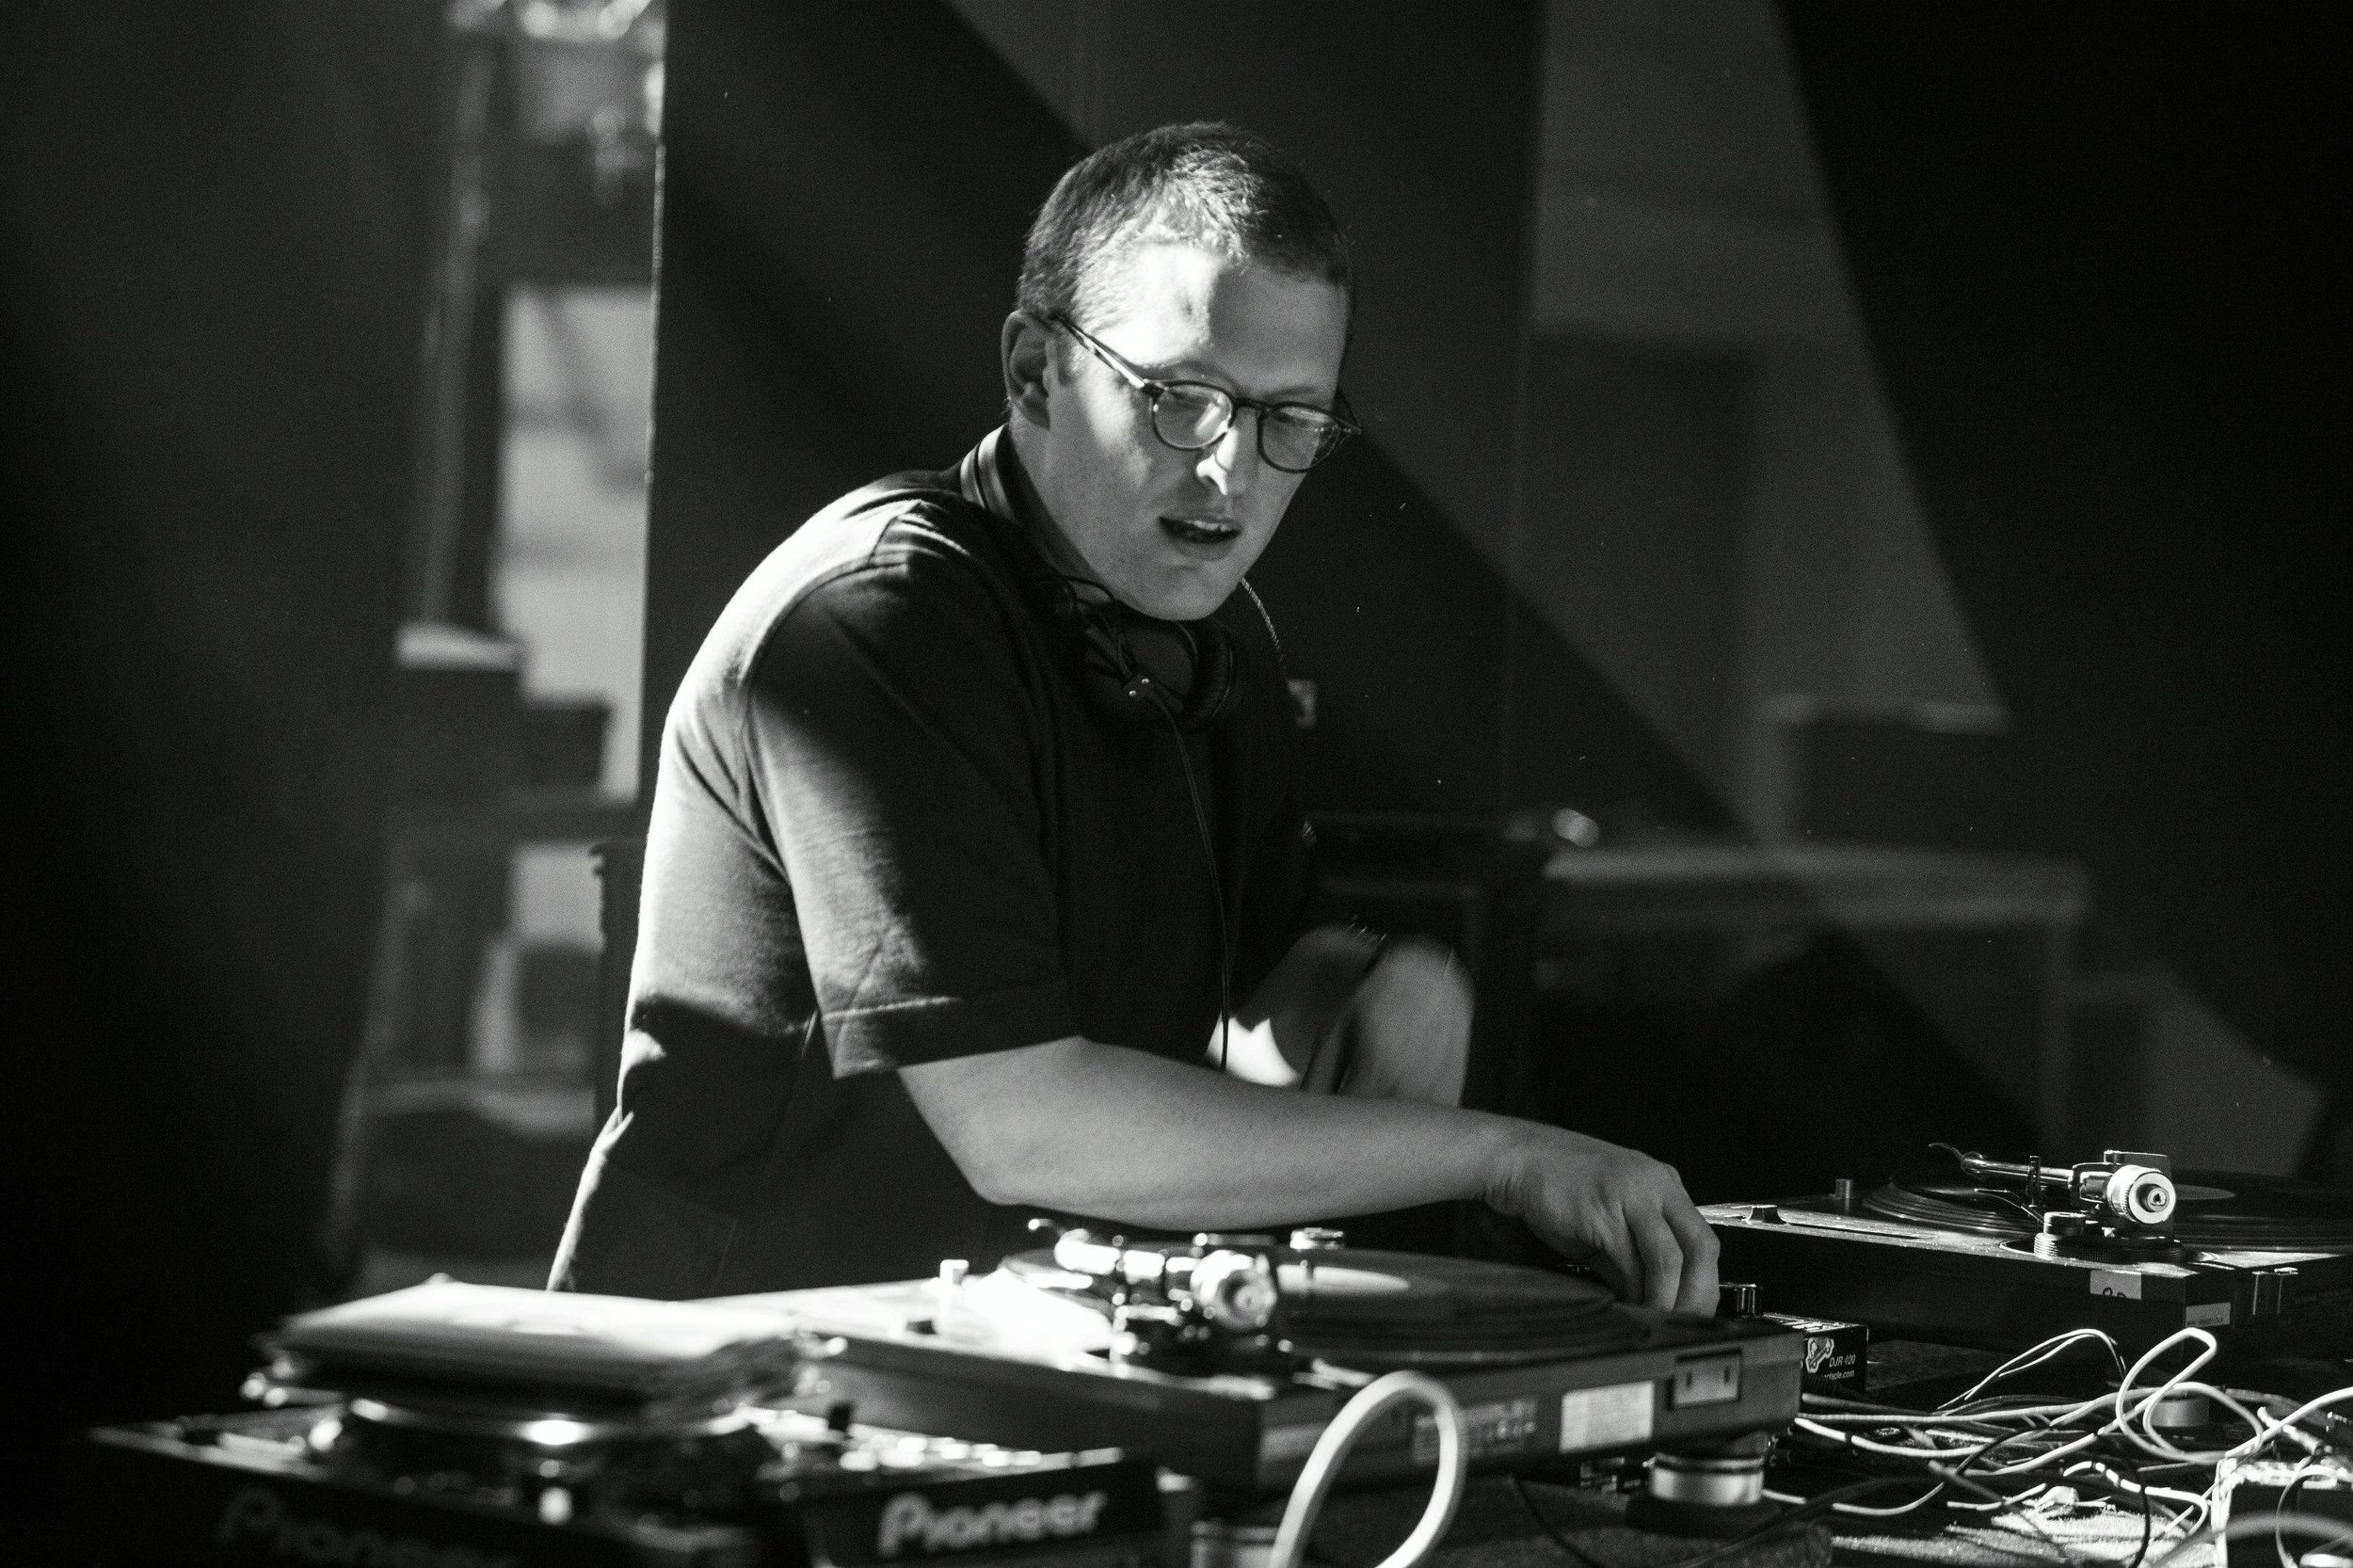 floating-points-on-the-rbma-stage-at-sonar-festival-2015.jpg